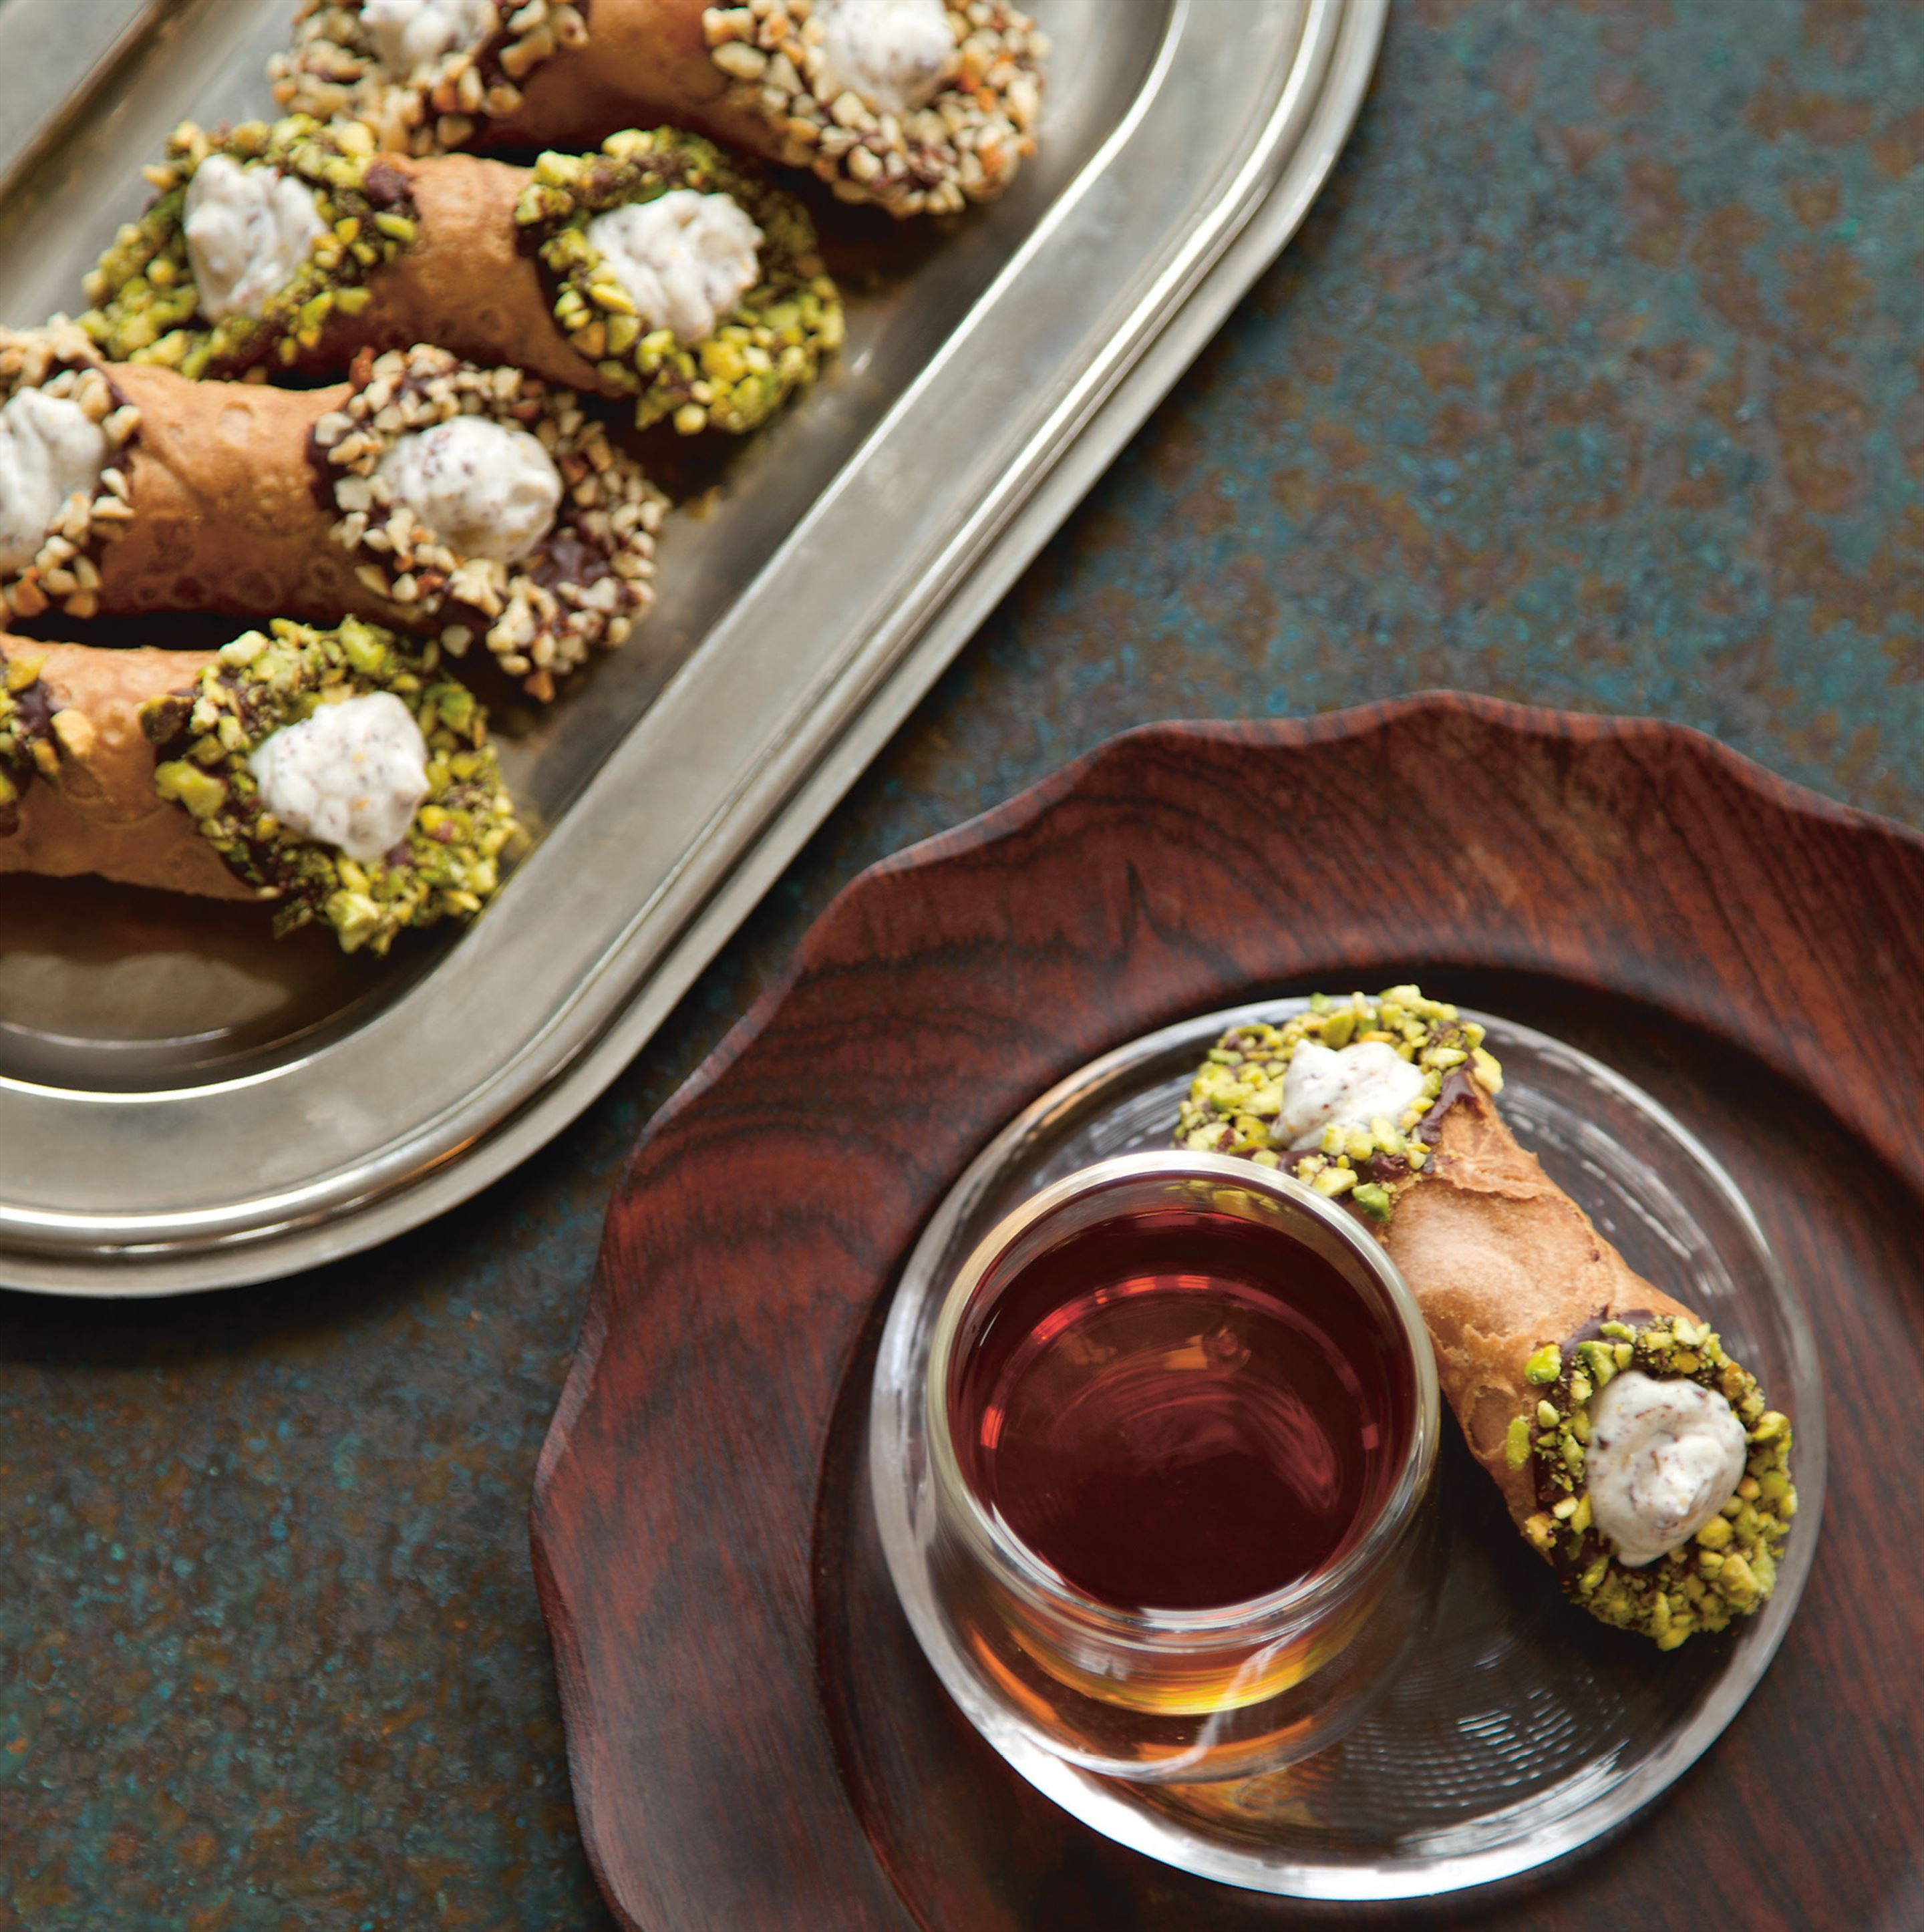 Mini ricotta-filled cannoli